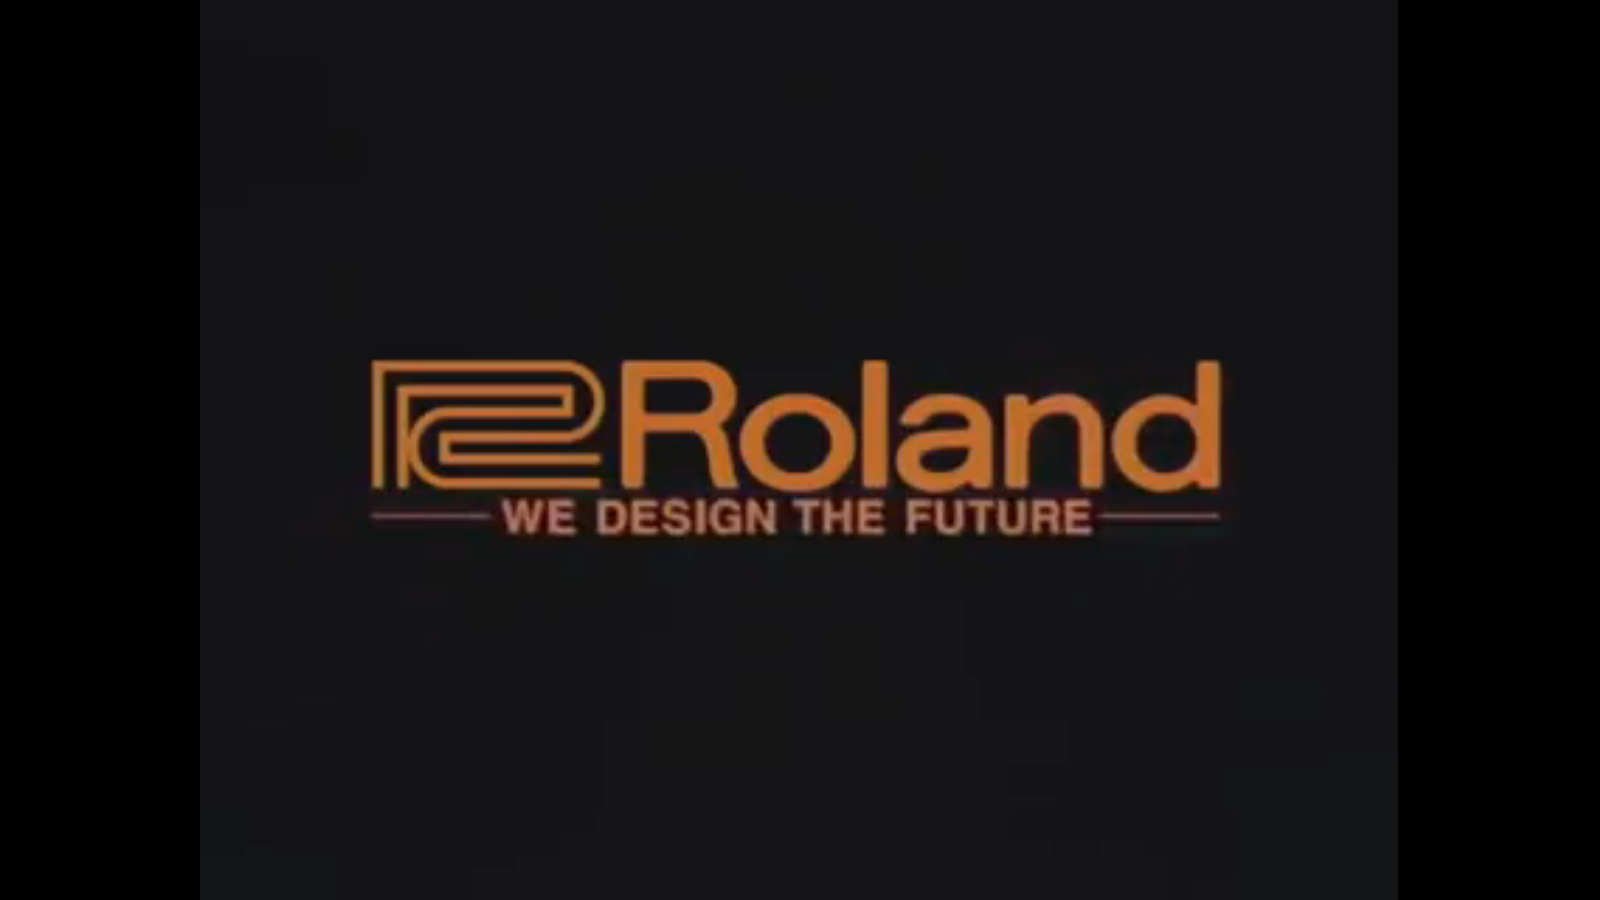 Today is Roland 808 day